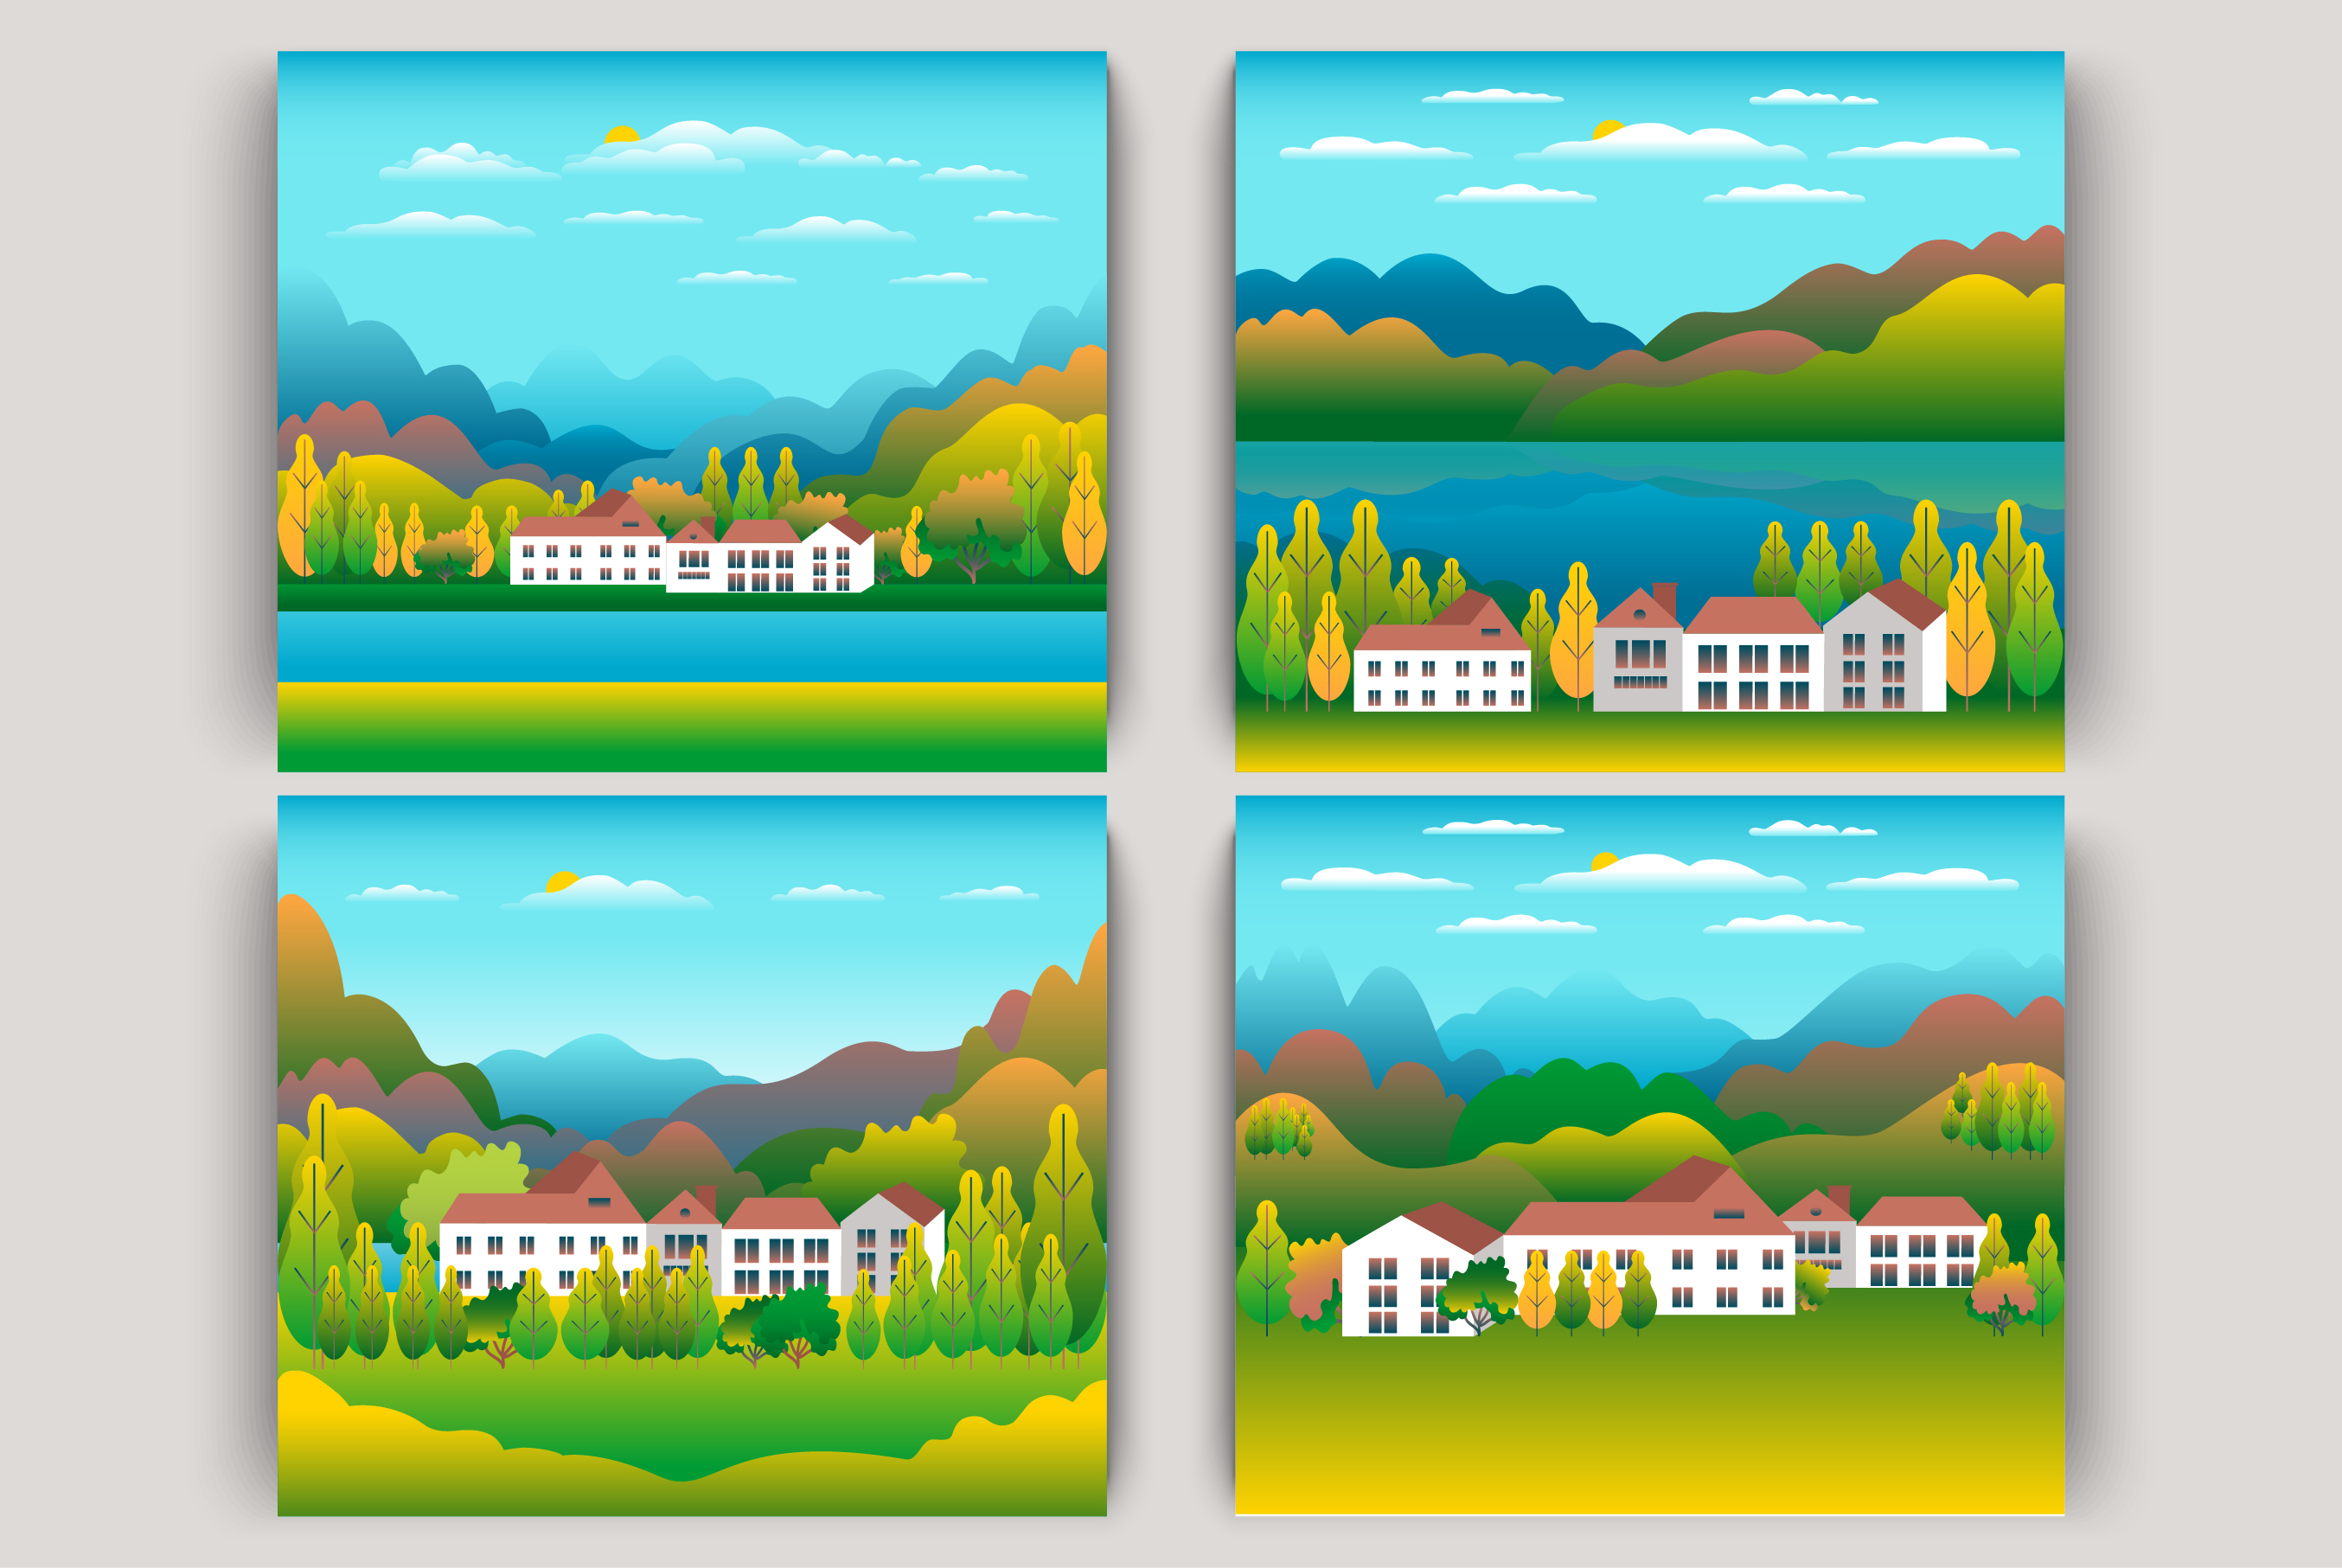 Hills, mountains and farm countryside landscape illustration example image 1